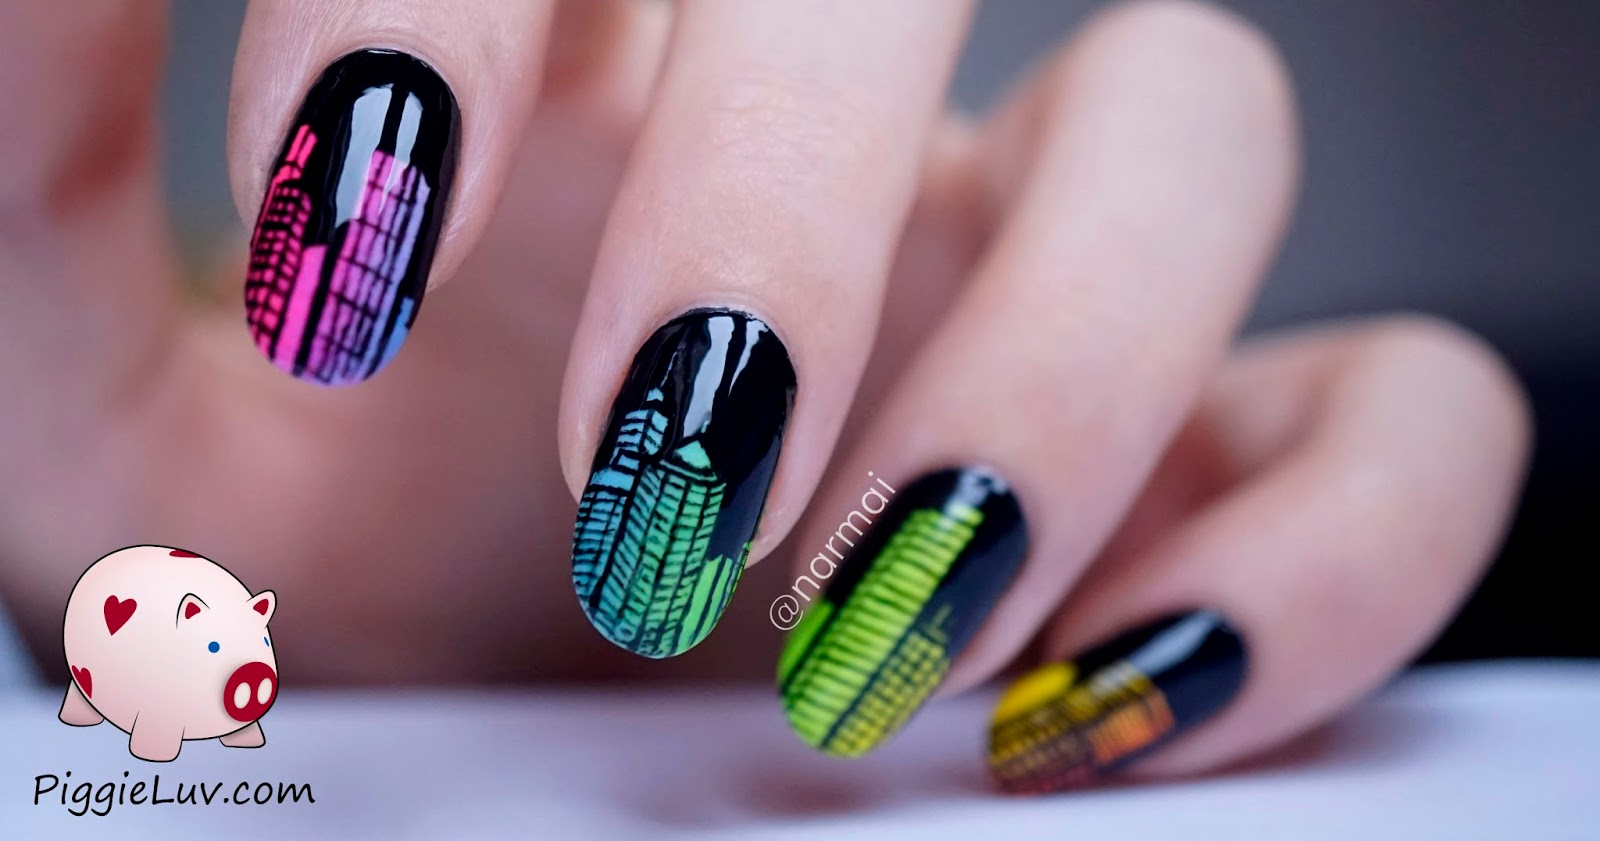 Piggieluv Glow In The Dark City Skyline Nail Art